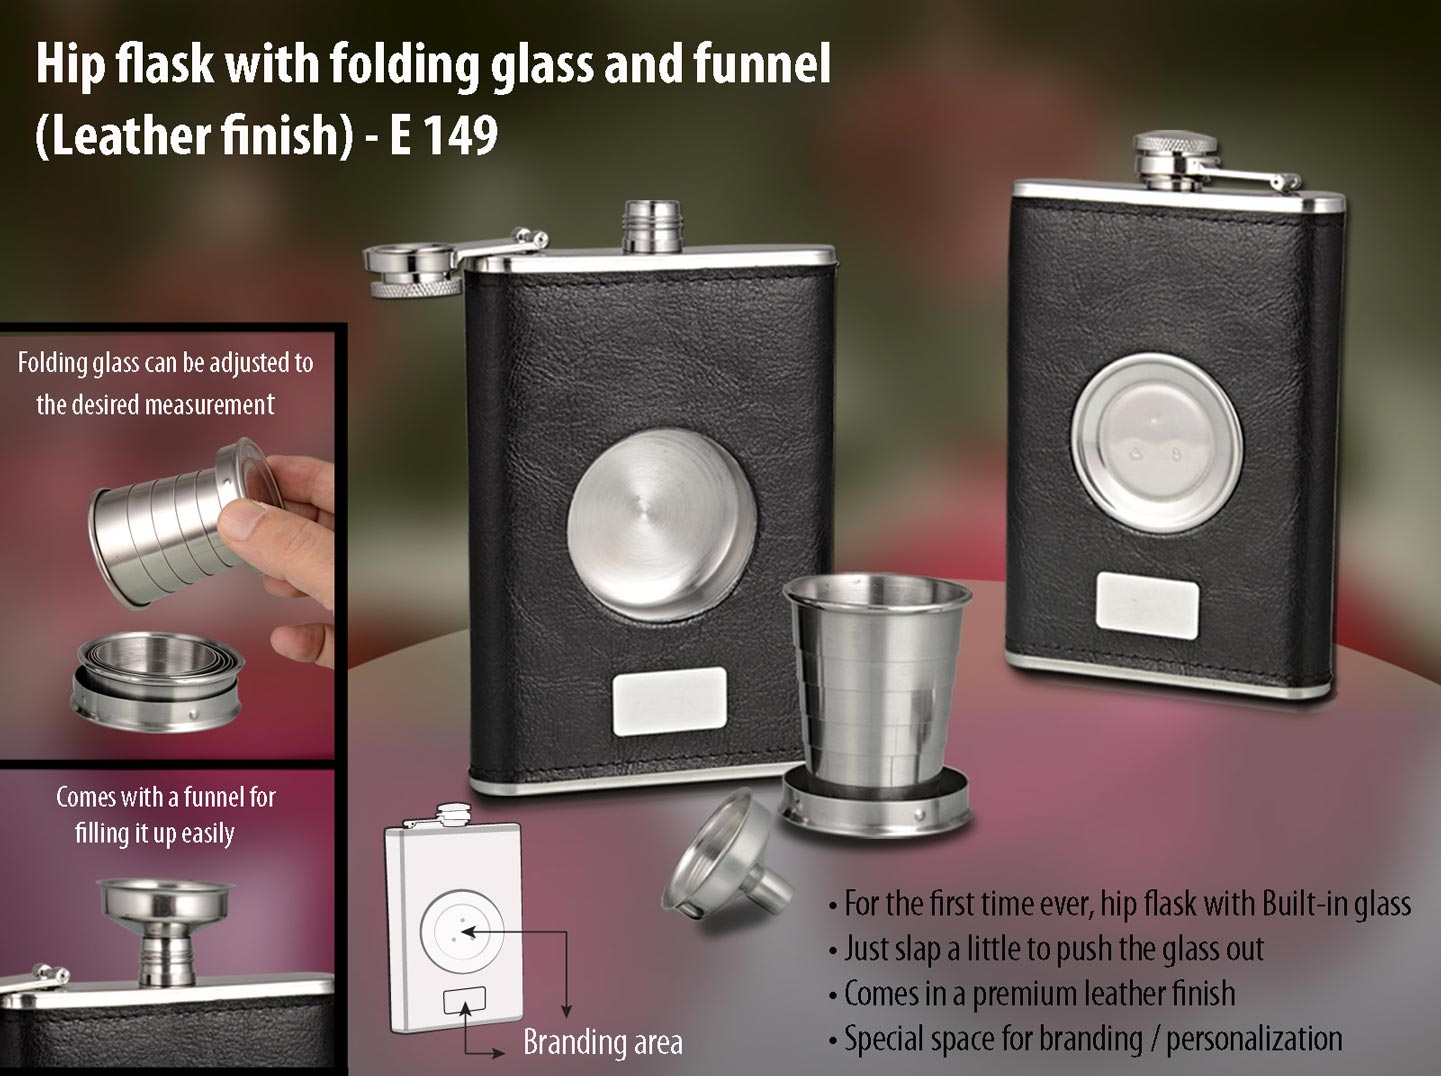 Hip flask with folding glass and funnel (Leather finish)